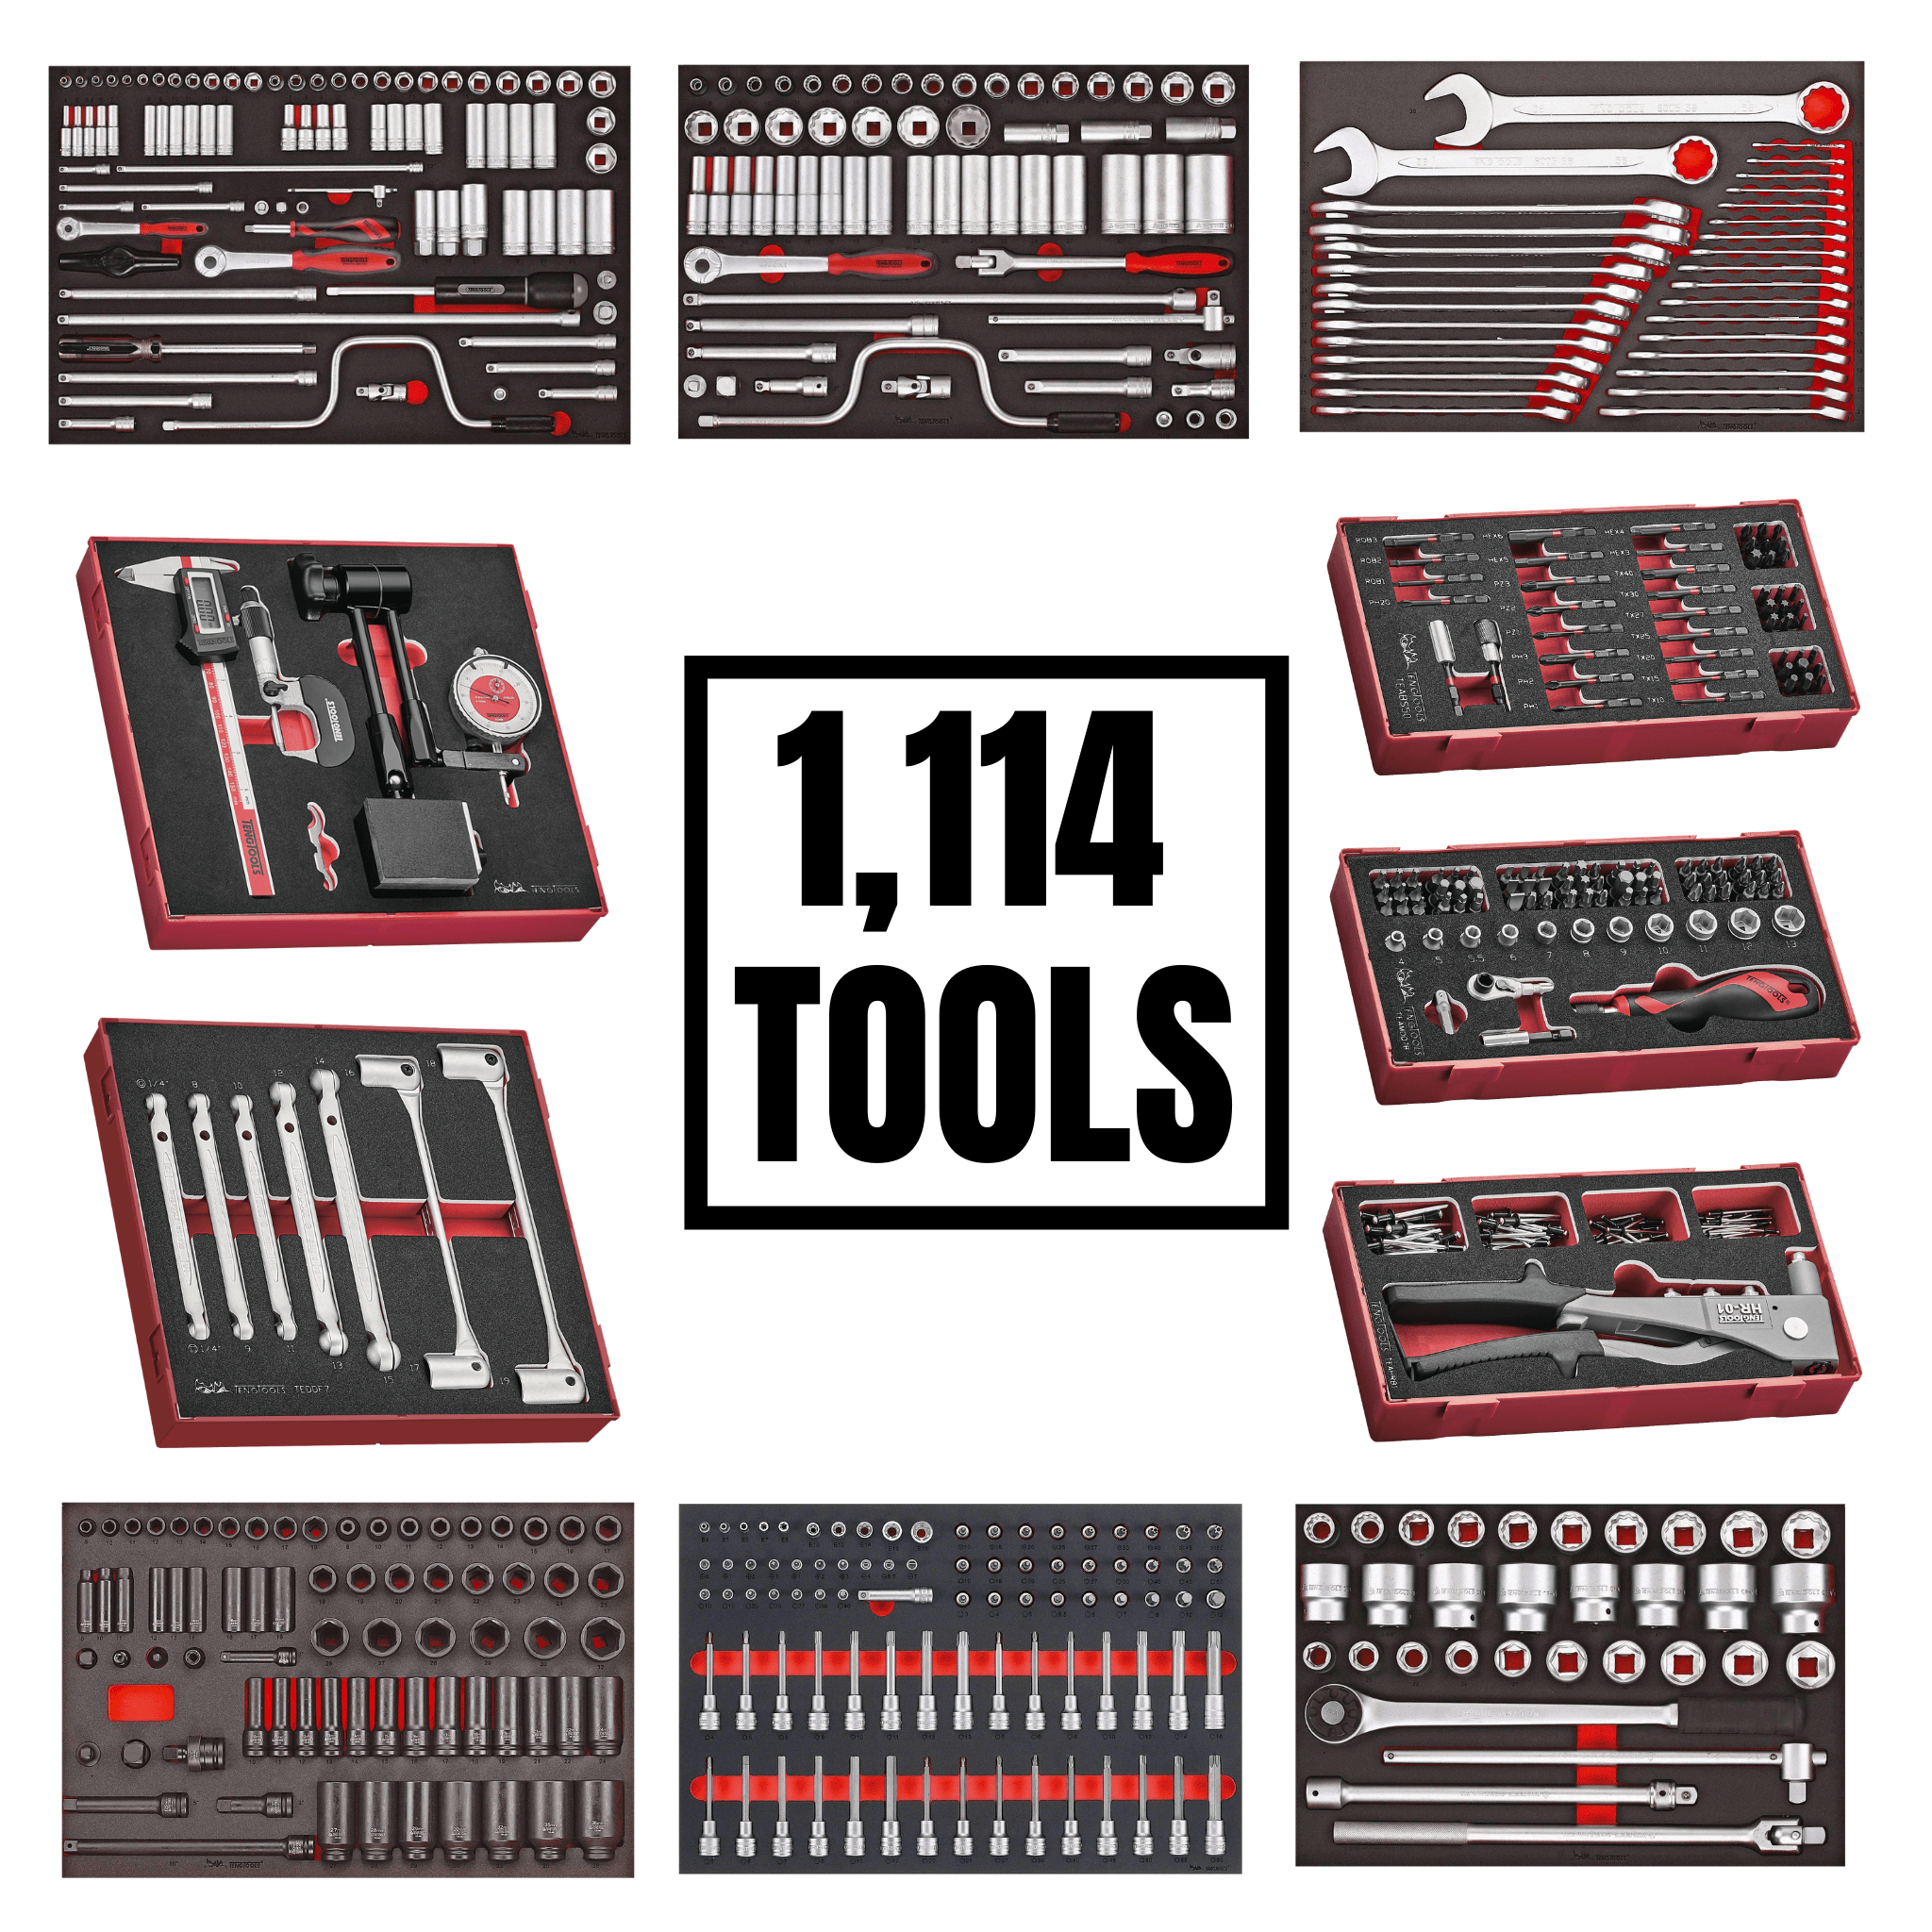 Teng Tools 1,114 Piece Ultimate EVA Monster Mega Tool Kit Bundle (No Storage) - MONSTEREVATOOLS